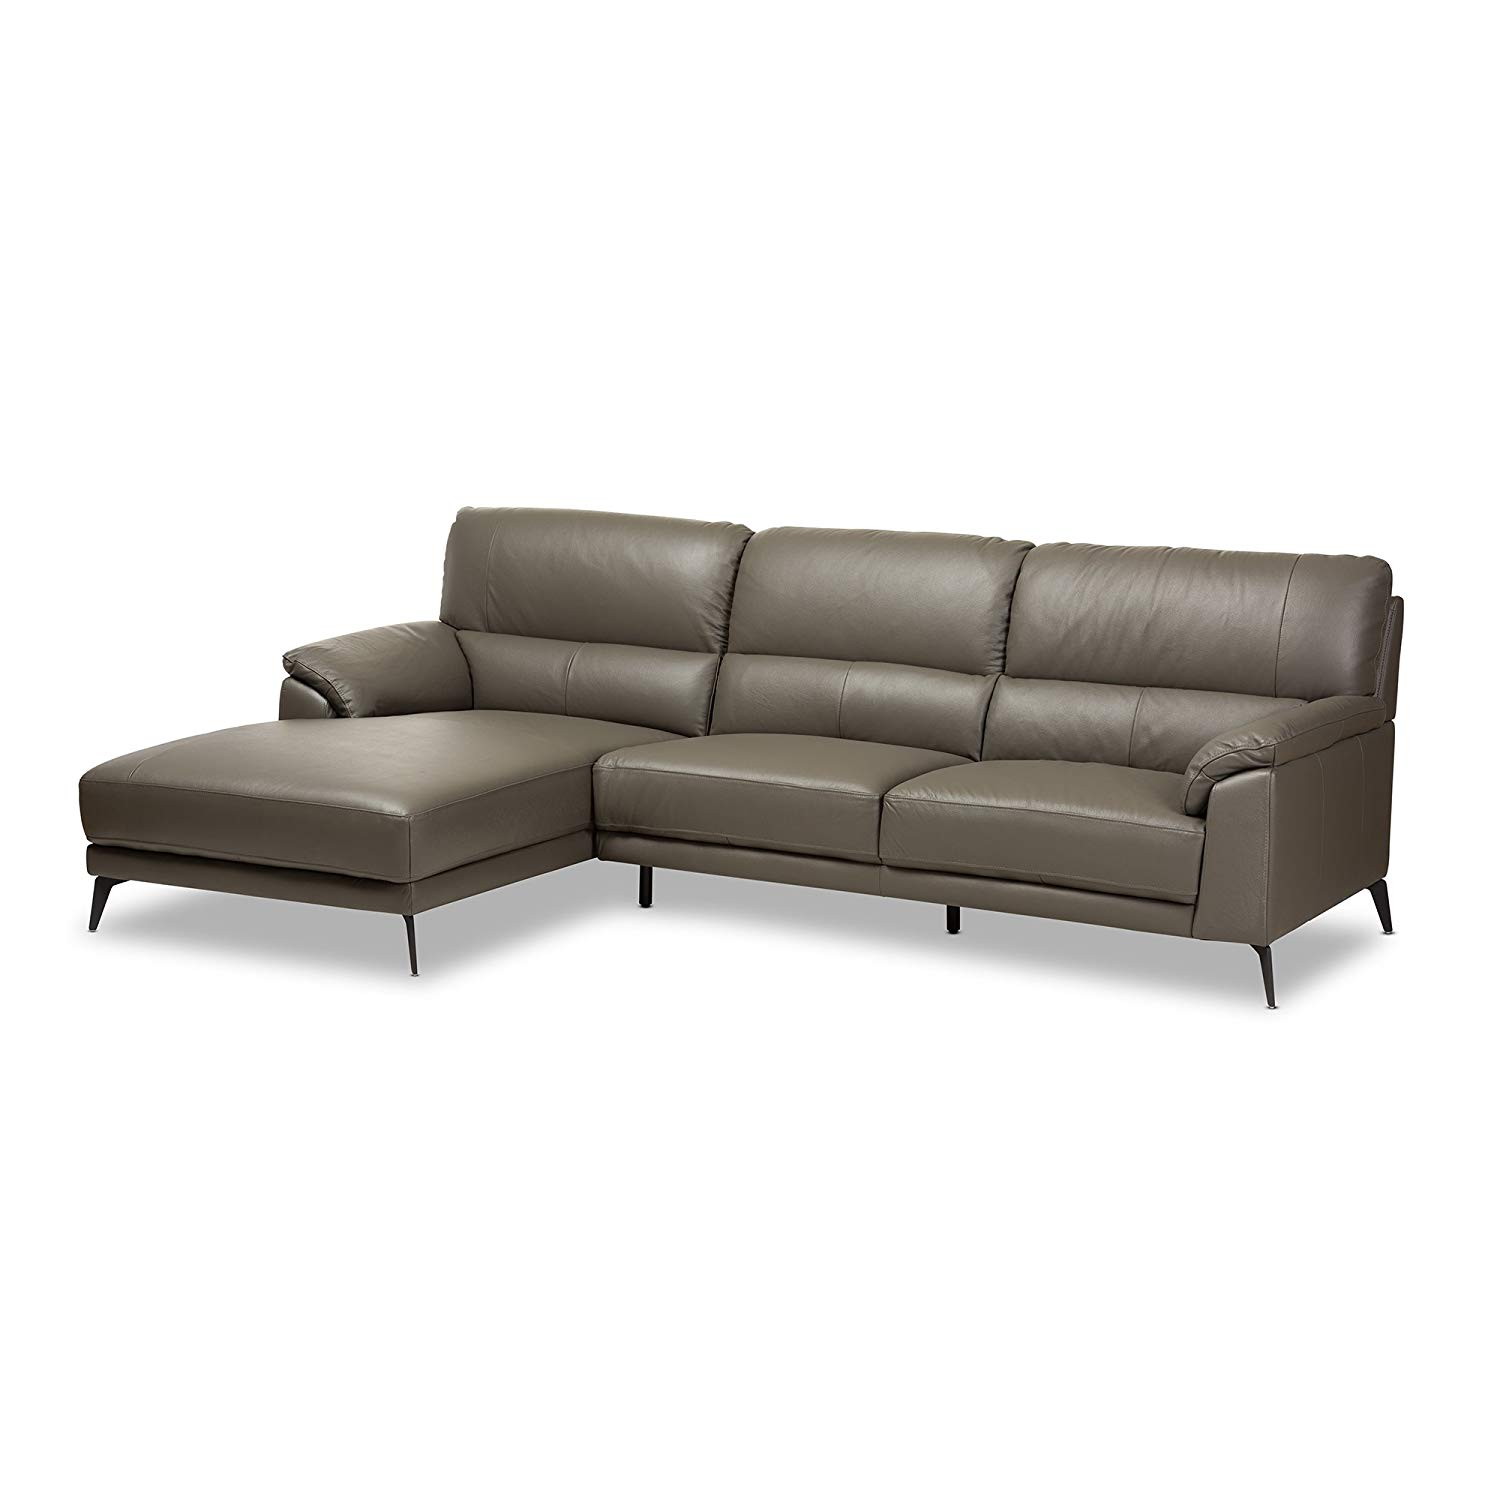 Baxton Studio Radford 2 Piece Leather Left Facing Sectional in Dark Gray